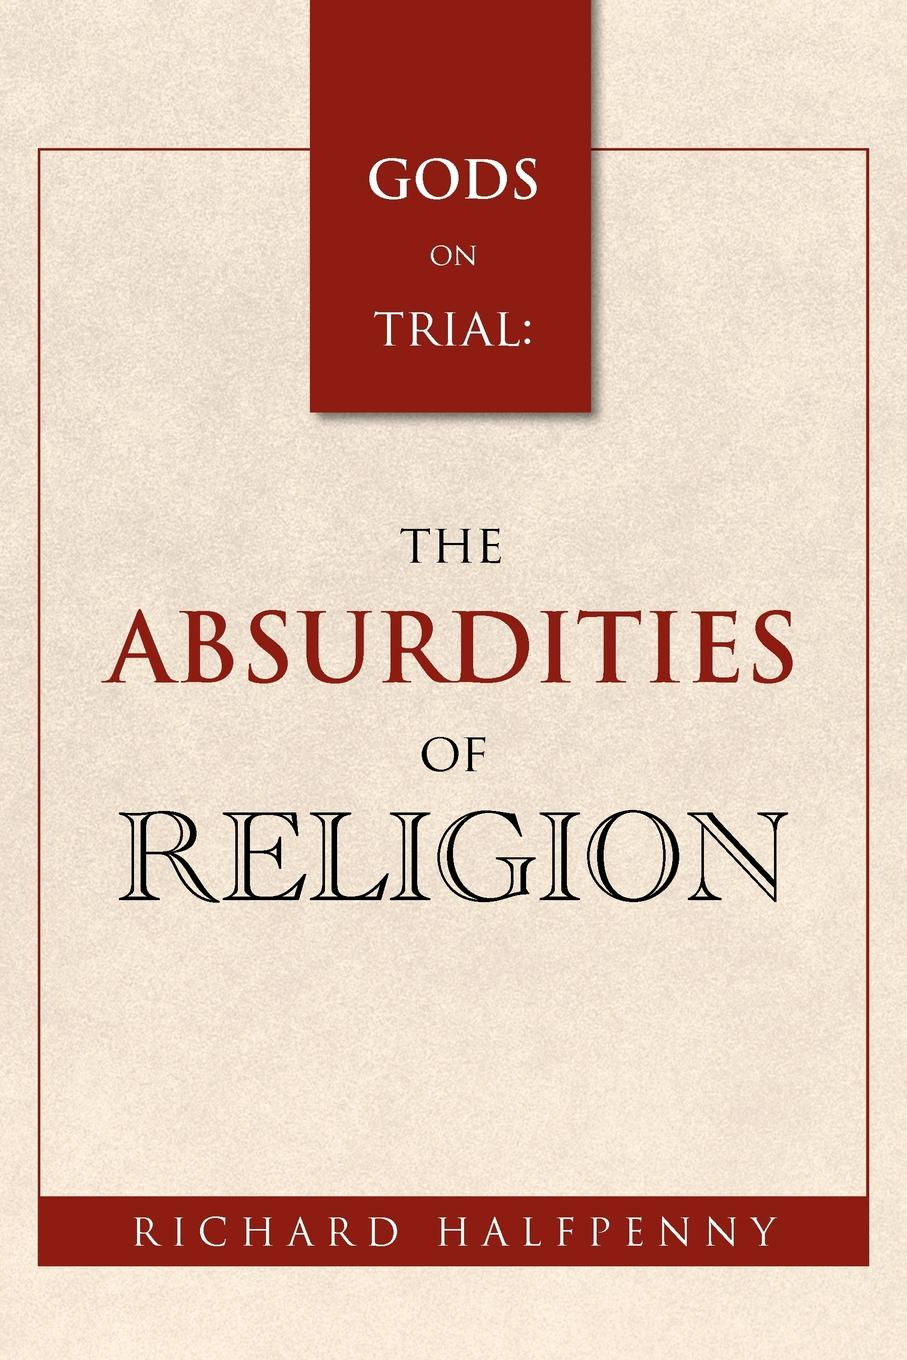 Richard Halfpenny GODS on Trial. The Absurdities of Religion history on trial